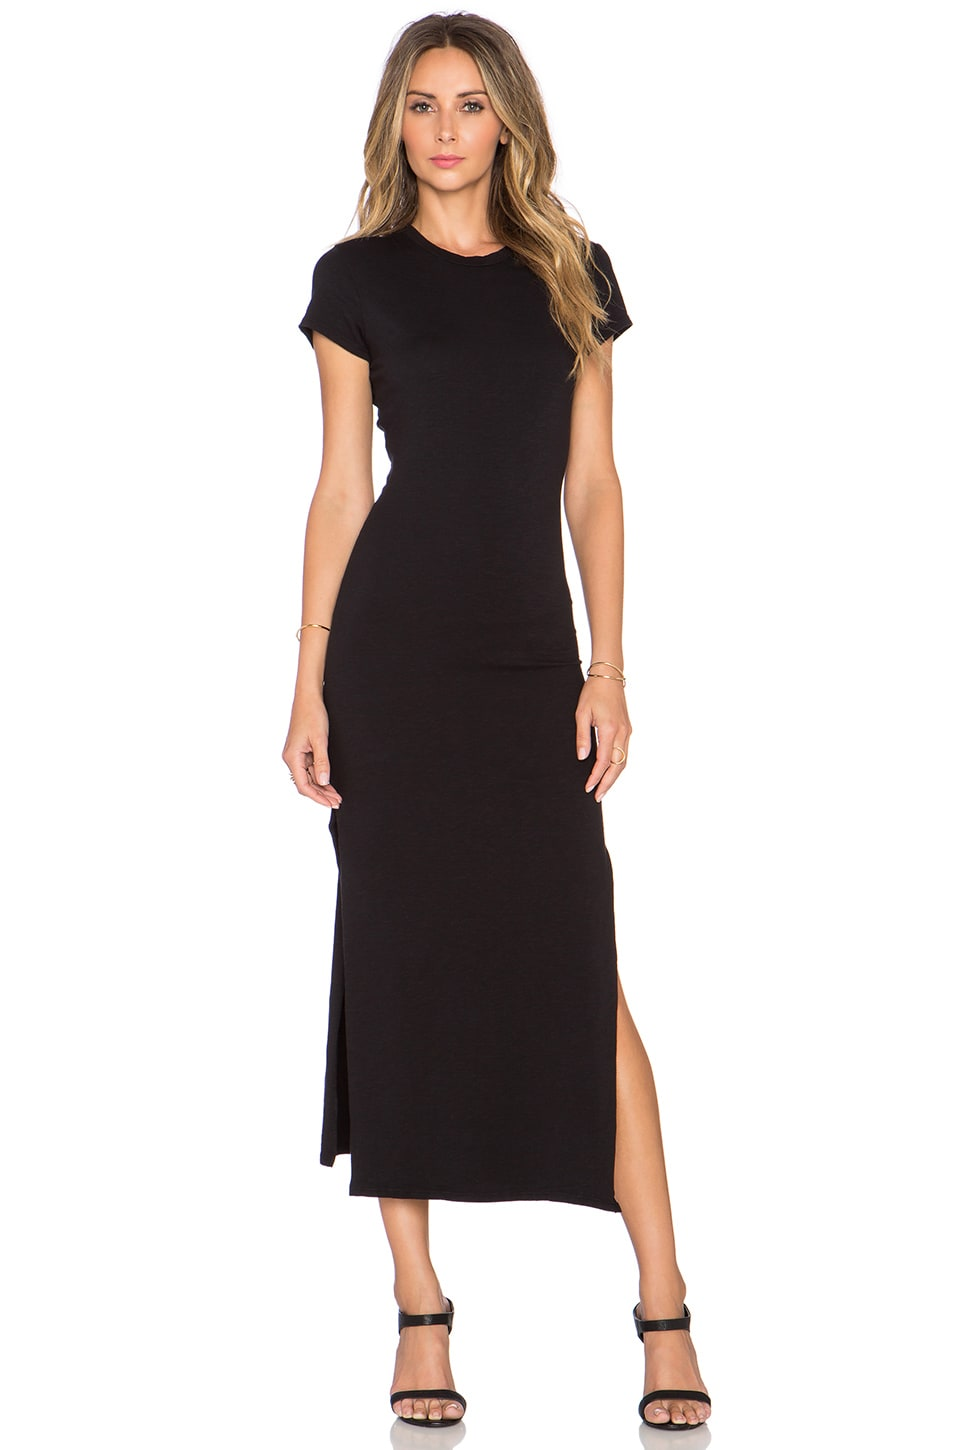 SUNDRY Slit Tee Dress in Black Pigment